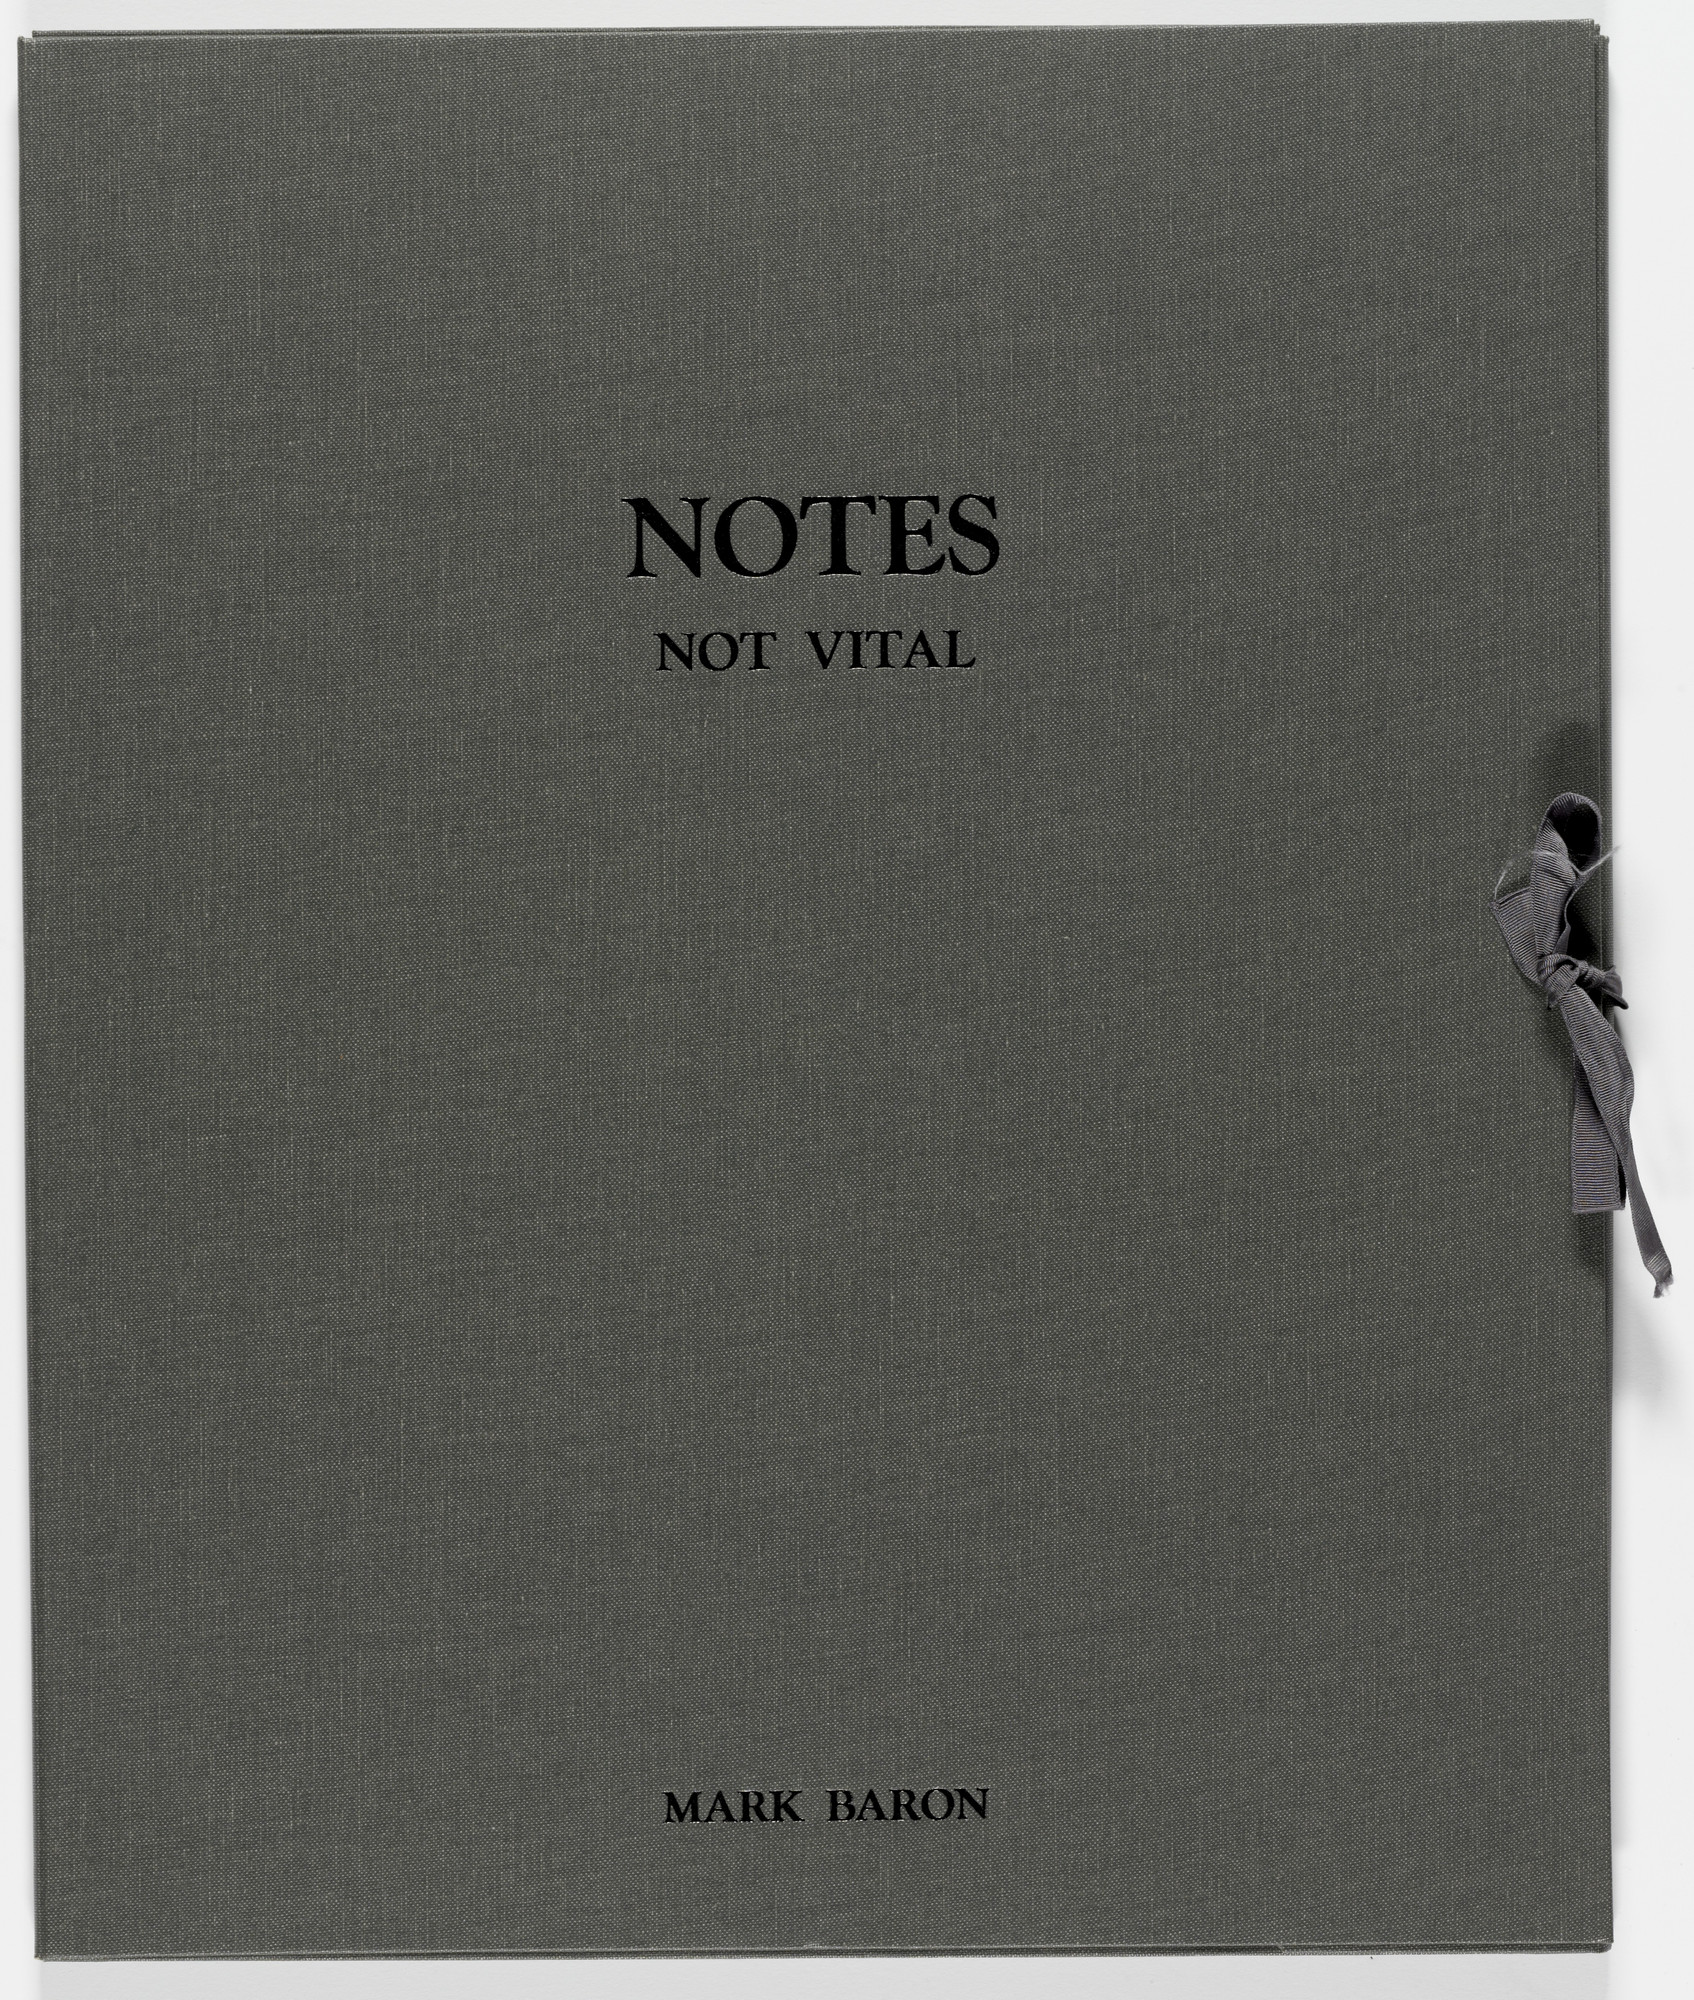 Not Vital. Notes. 1986